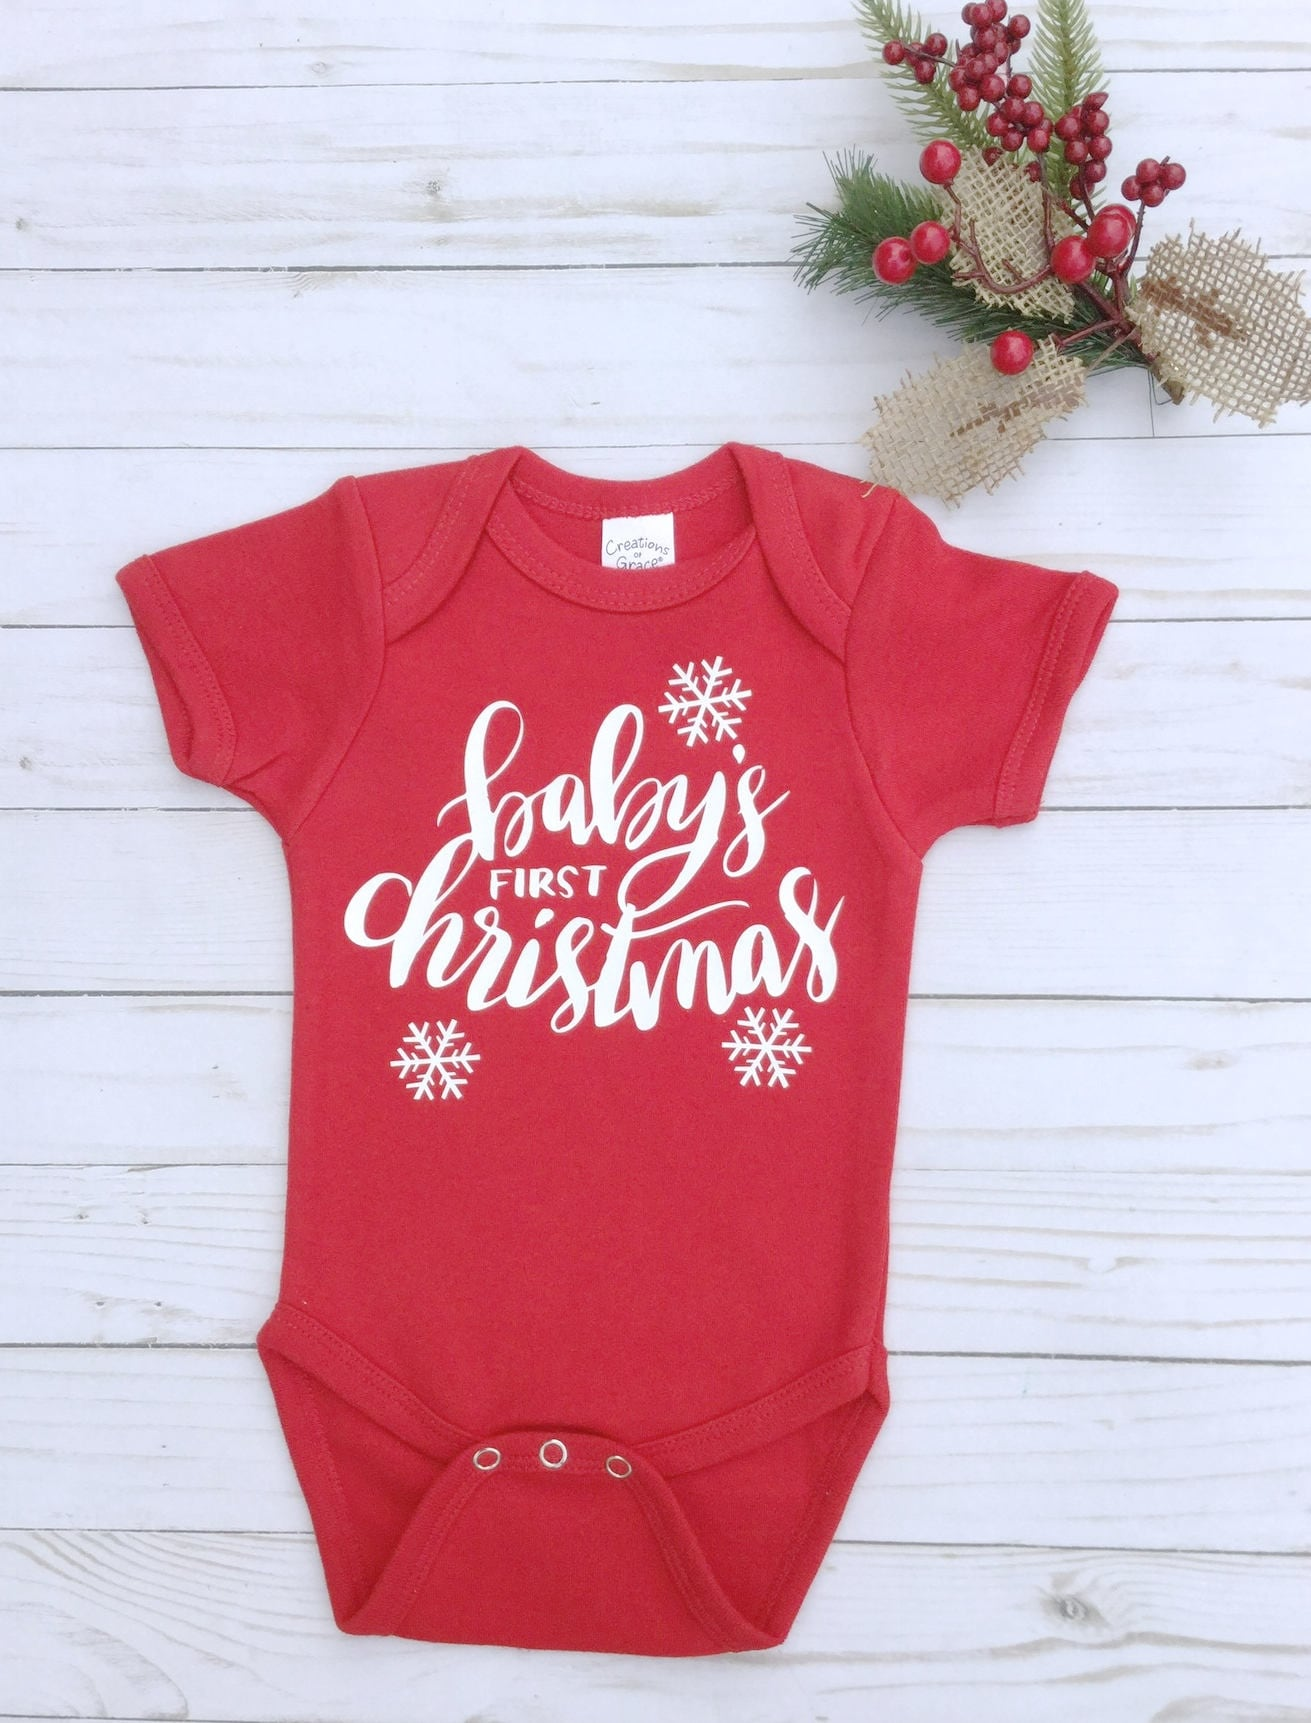 christmas onesiebabys first christmaschristmas pajamasbaby bodysuitholiday clothes for baby red onesiefree shipping